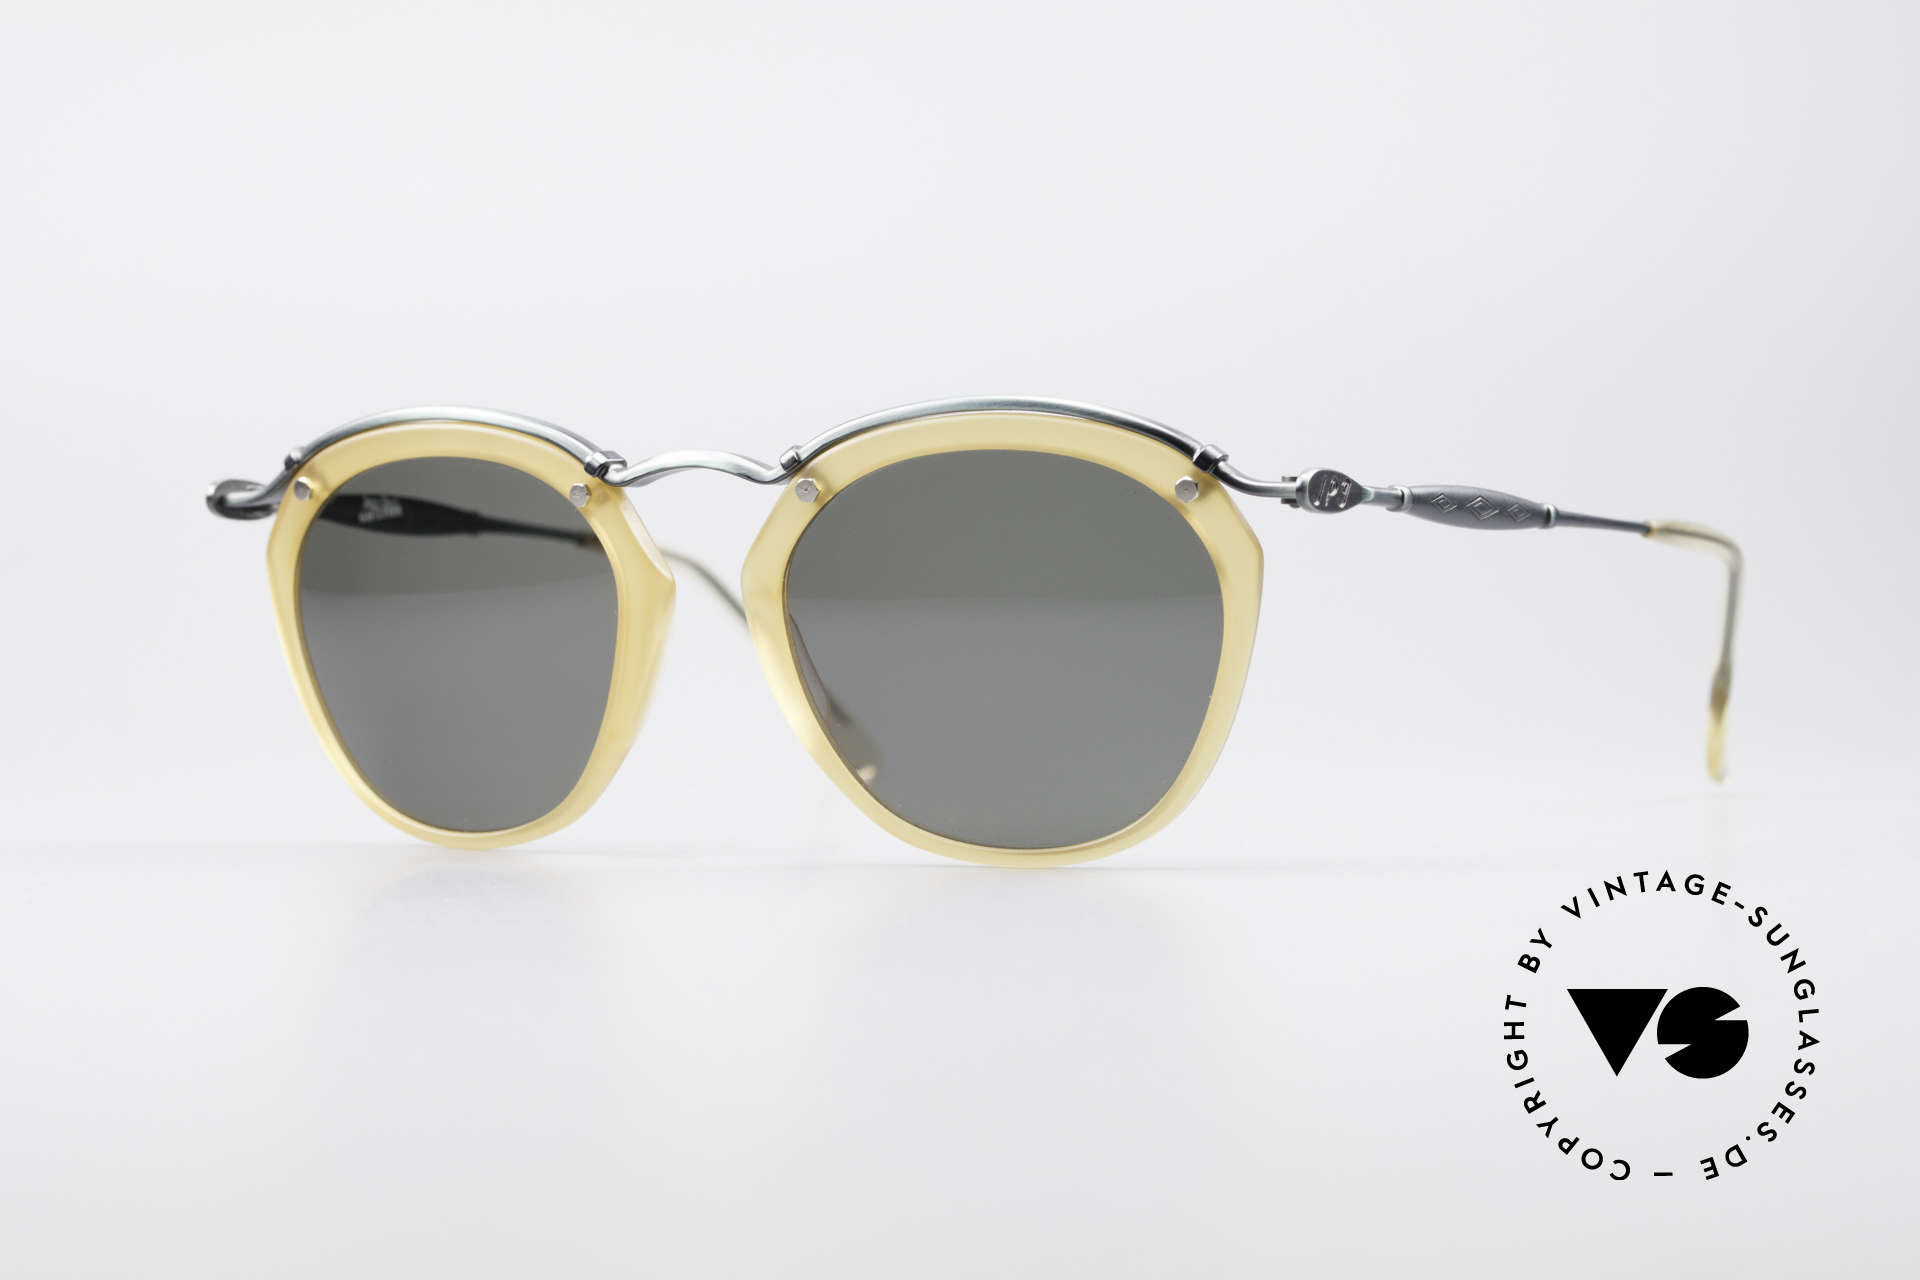 Jean Paul Gaultier 56-1273 Panto Style Sunglasses, noble vintage sunglasses by Jean Paul Gaultier, Made for Men and Women